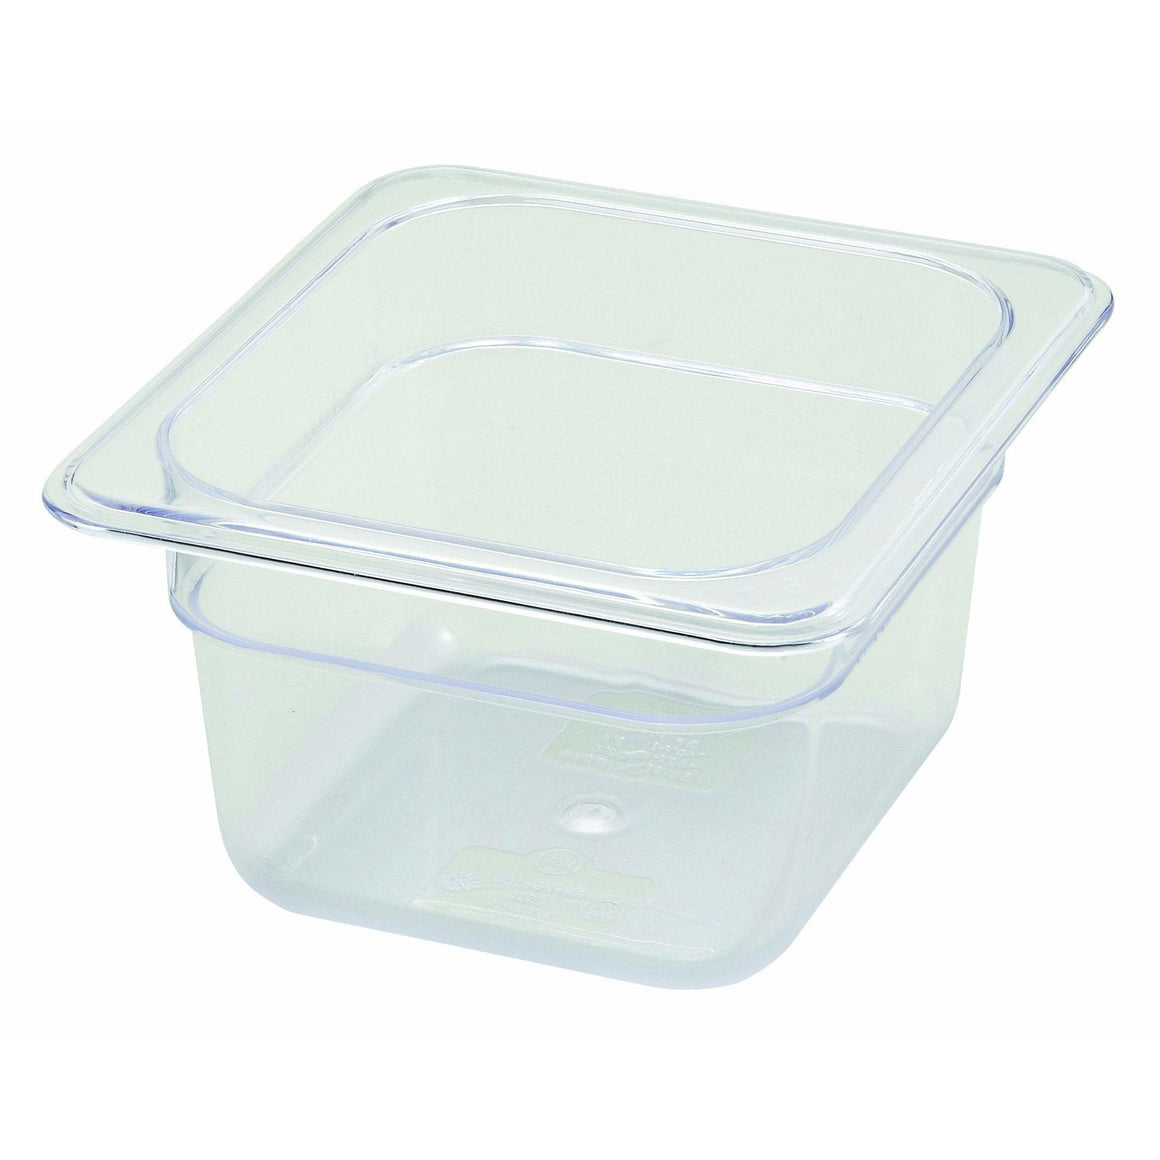 "Winco - SP7604 - PC Food Pan, 1/6 Size, 4"" - Food Storage"